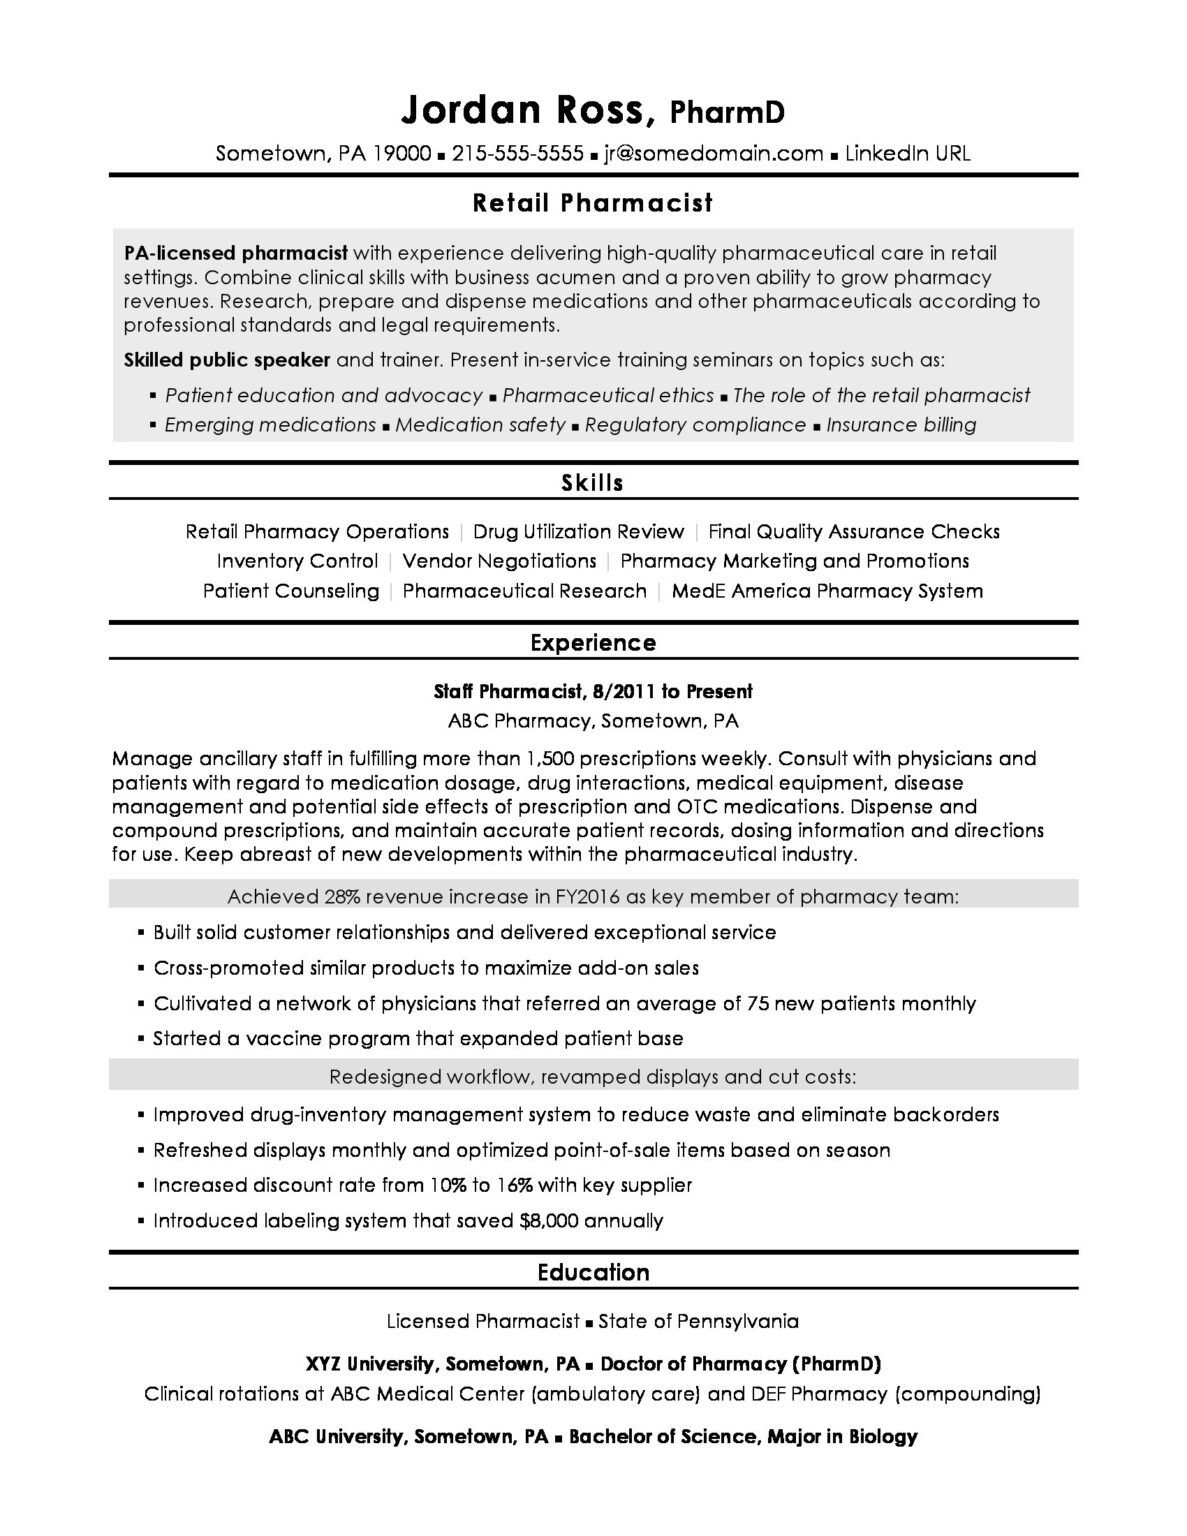 Cheap critical analysis essay writer for hire for phd